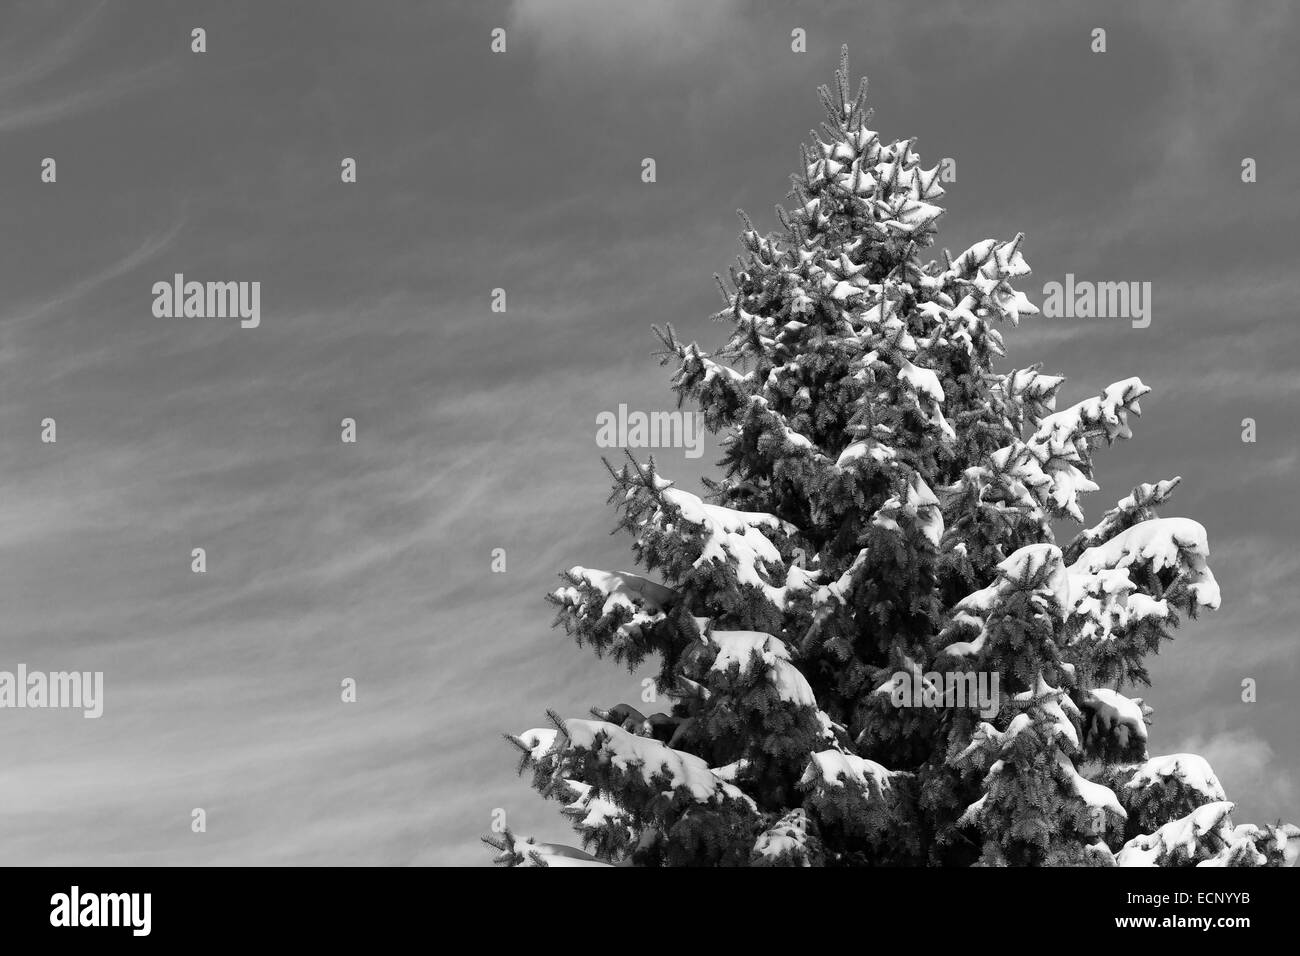 A canadian Tree covered in snow in the winter in black and white - Stock Image